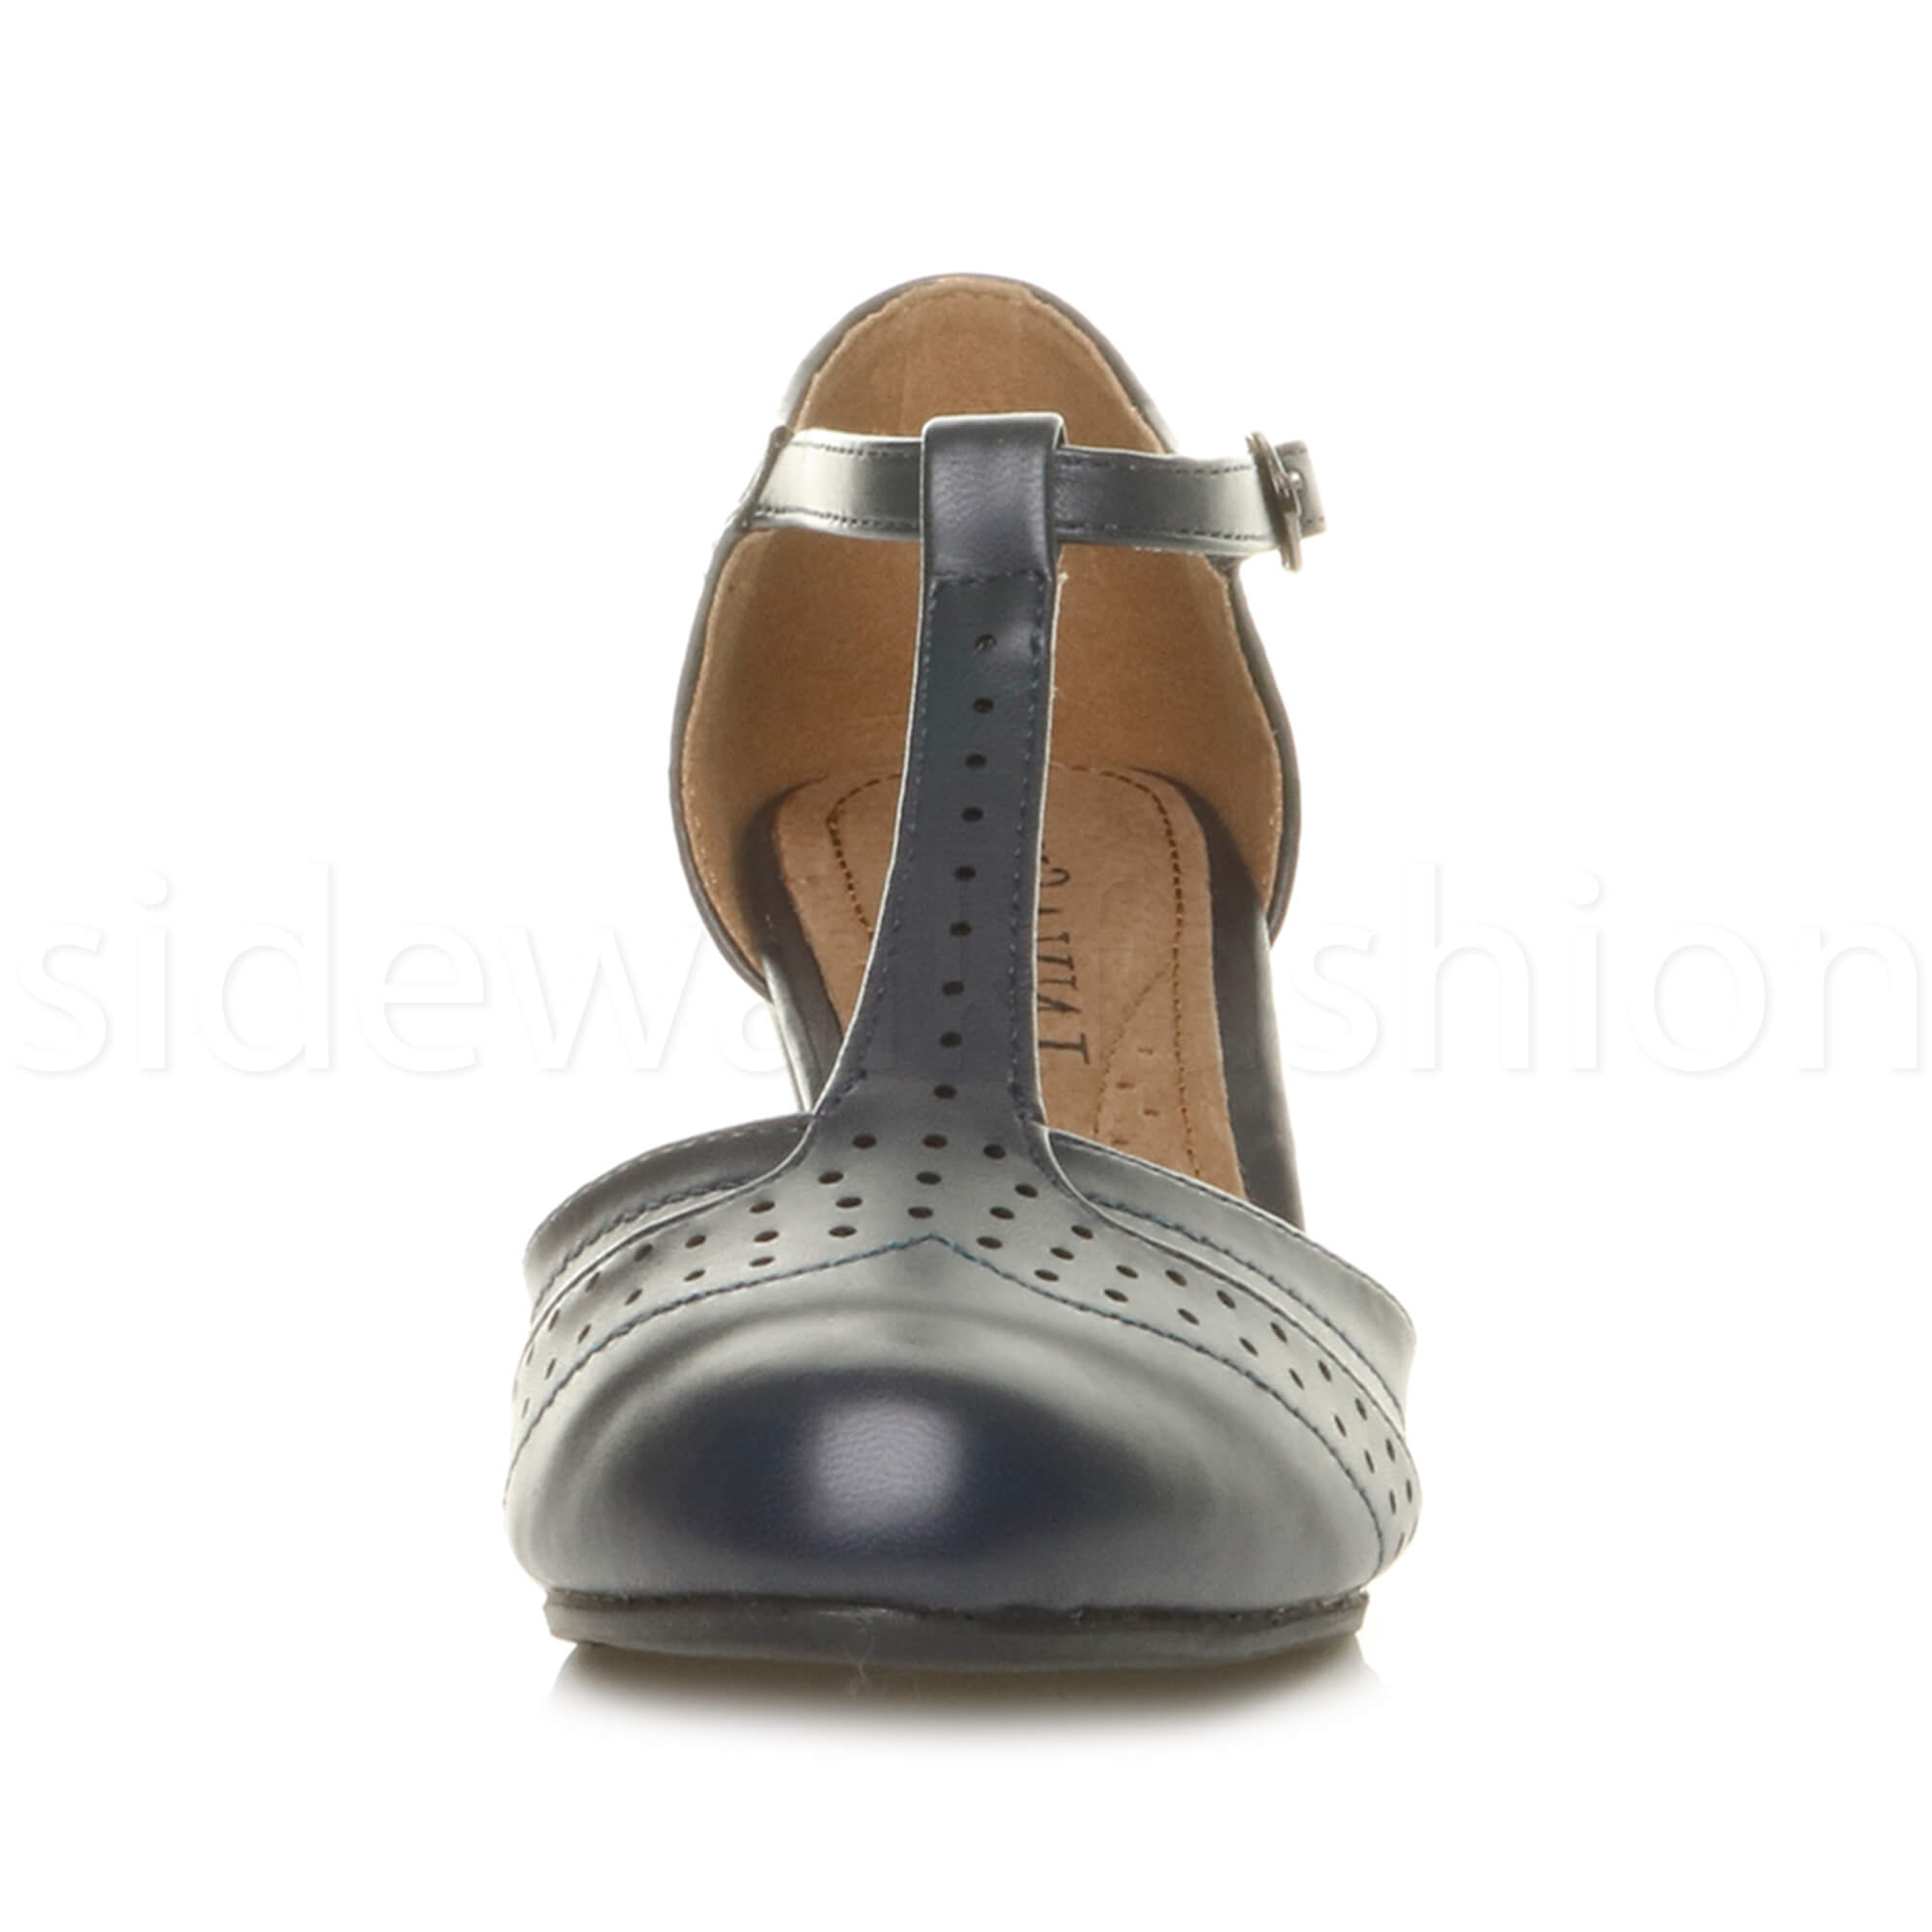 Womens-ladies-block-low-mid-heel-smart-work-Mary-Jane-T-bar-brogue-court-shoes thumbnail 42